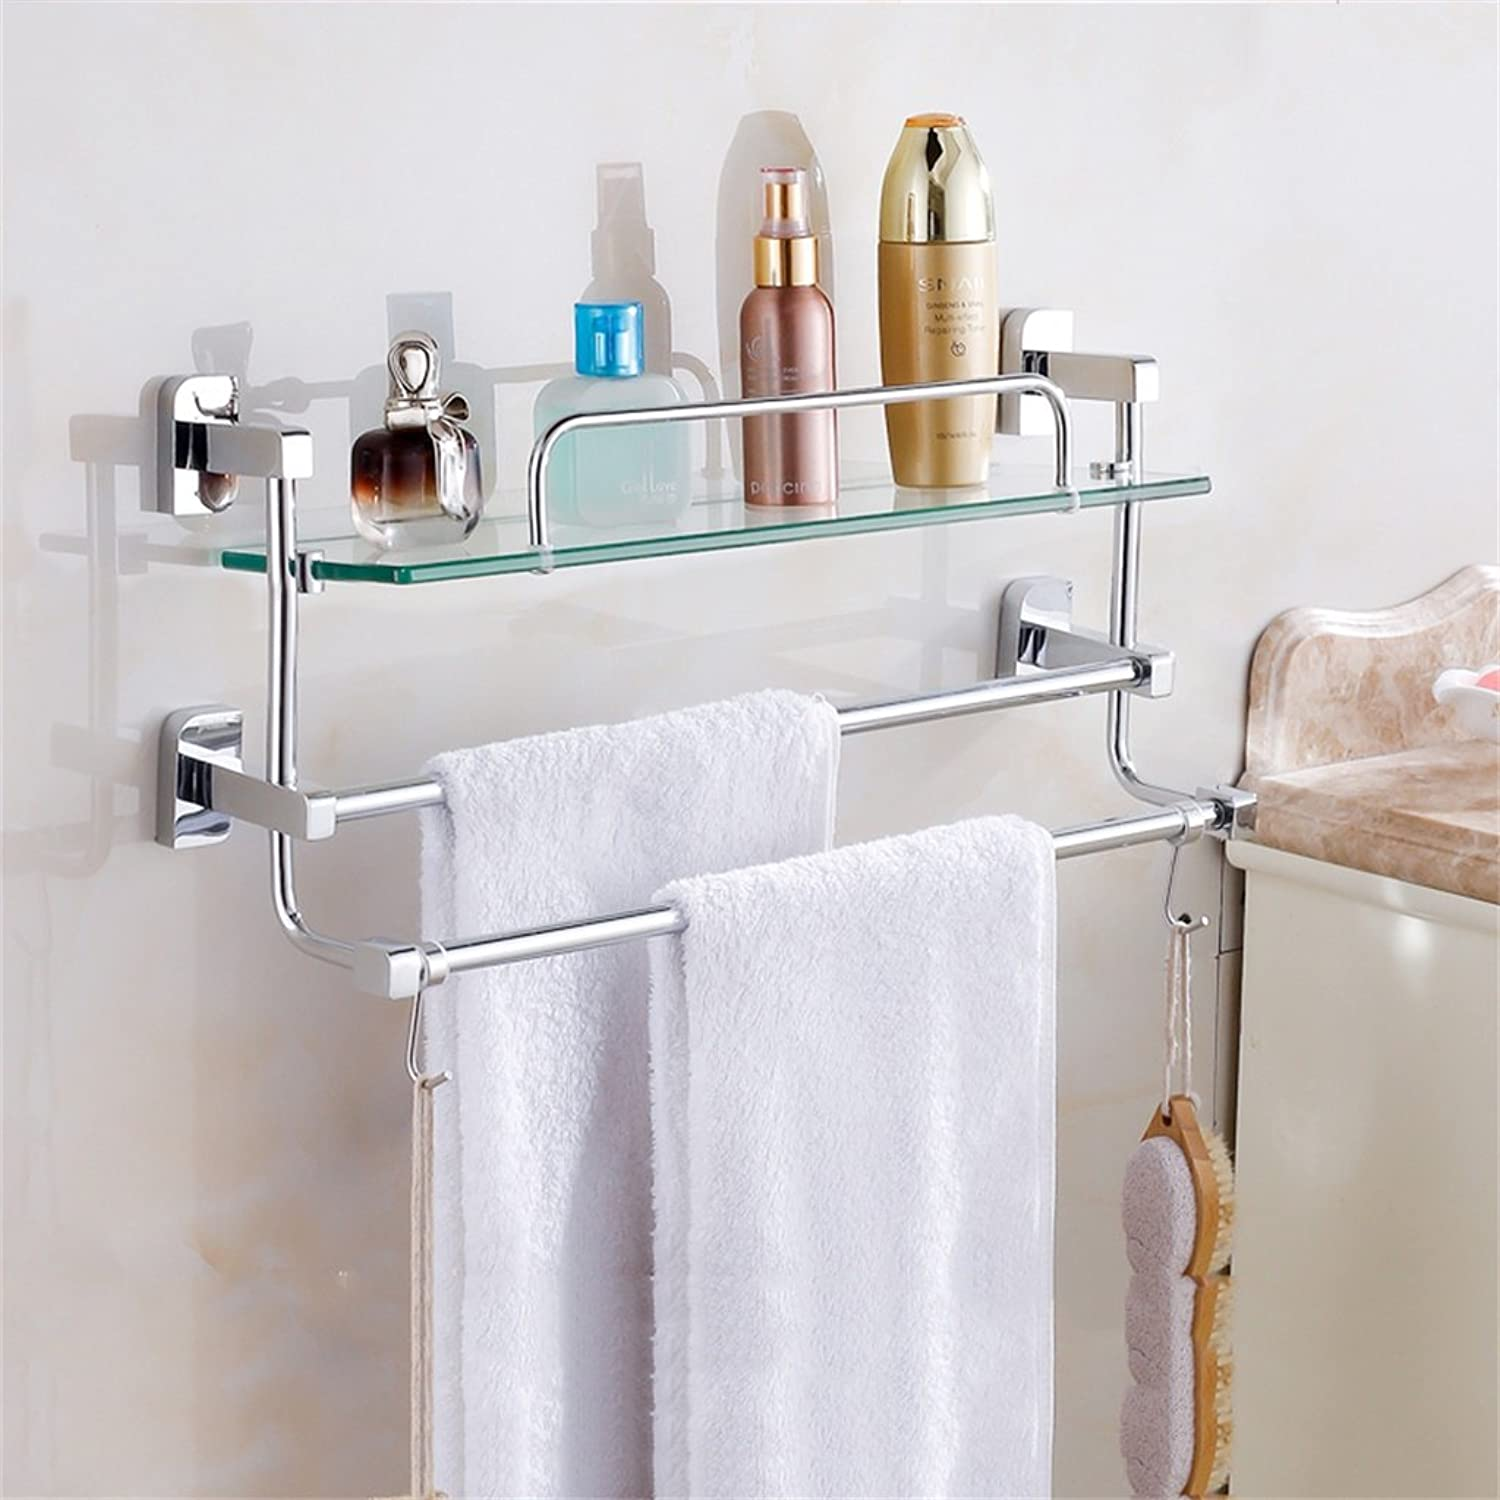 Cpp Shelf Bathroom Shelf Bathroom Shelf Glass Bathroom Wall mountings Safety Rounded Corners (Size   L 41CM)